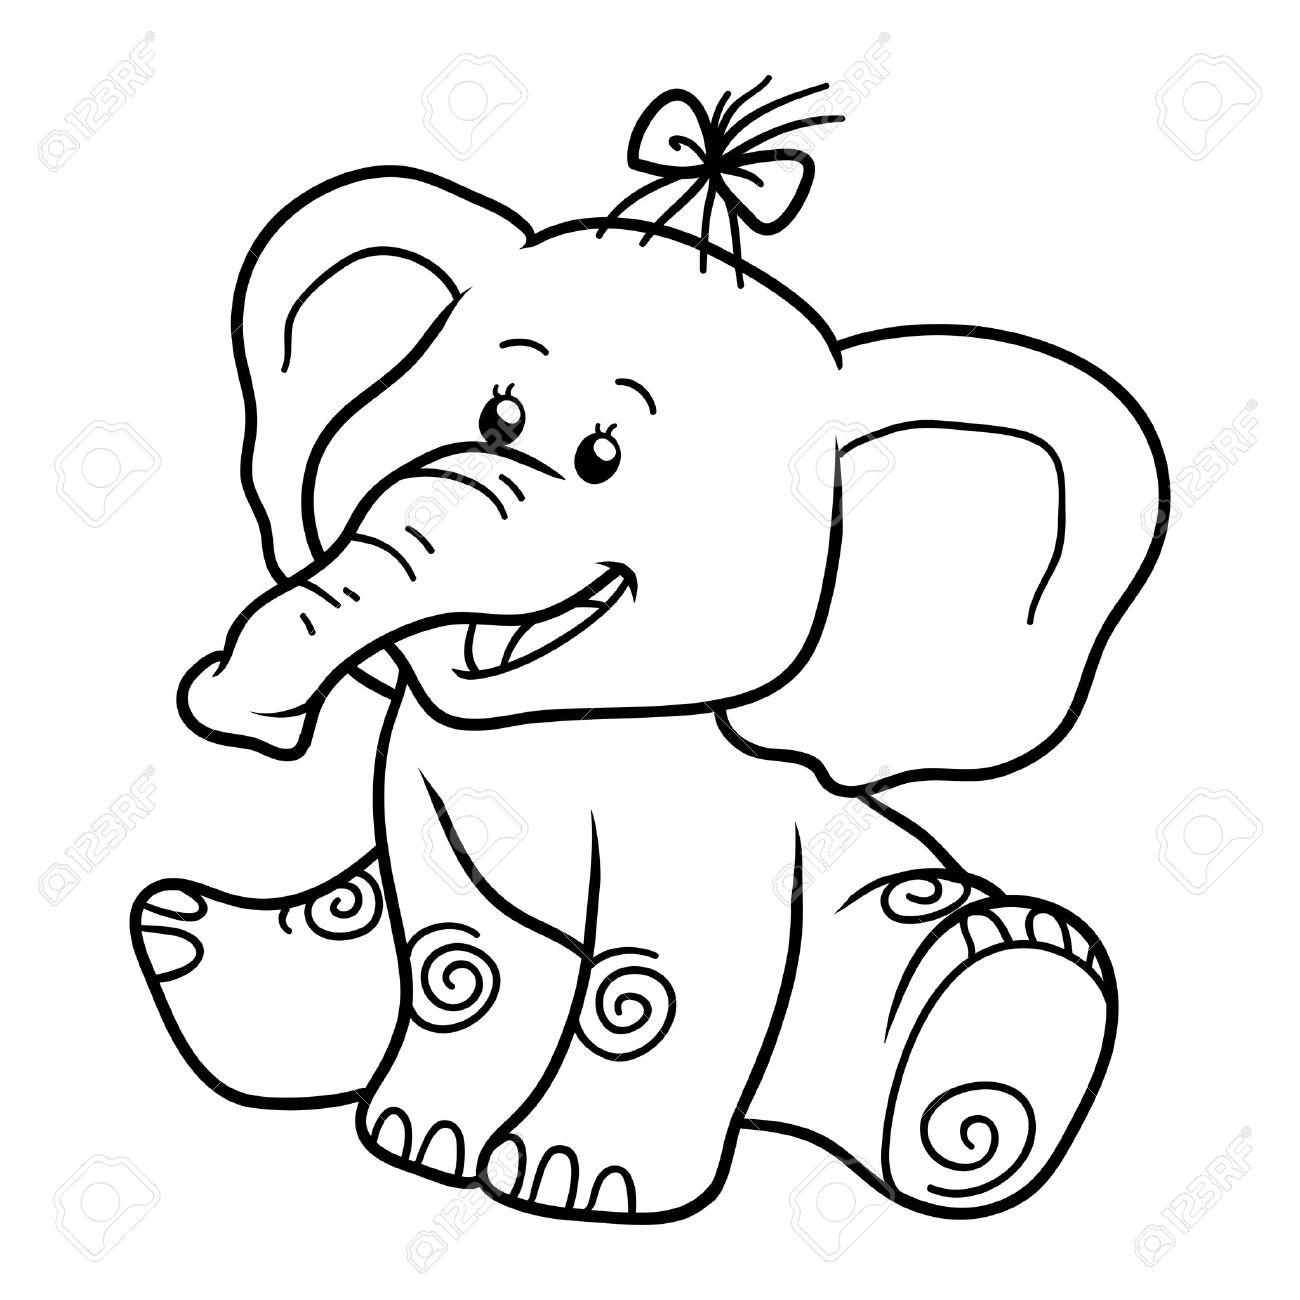 Coloring Book For Children Education Game Elephant Stock Vector